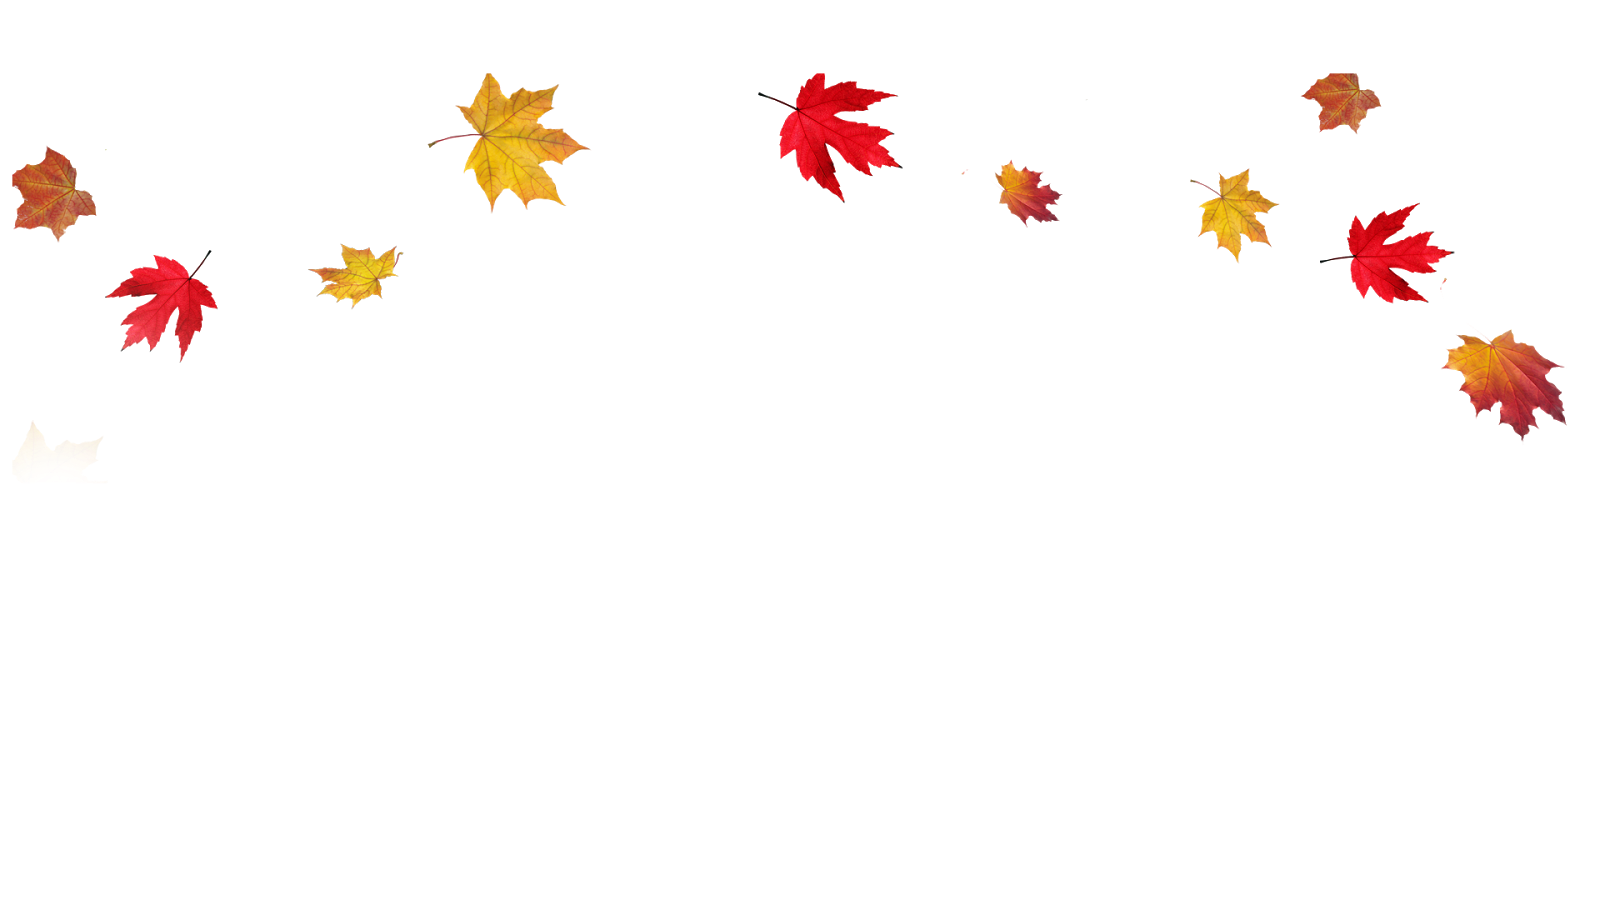 Transparent Fall Leaves Border PNG - Autumn Leaves HD PNG